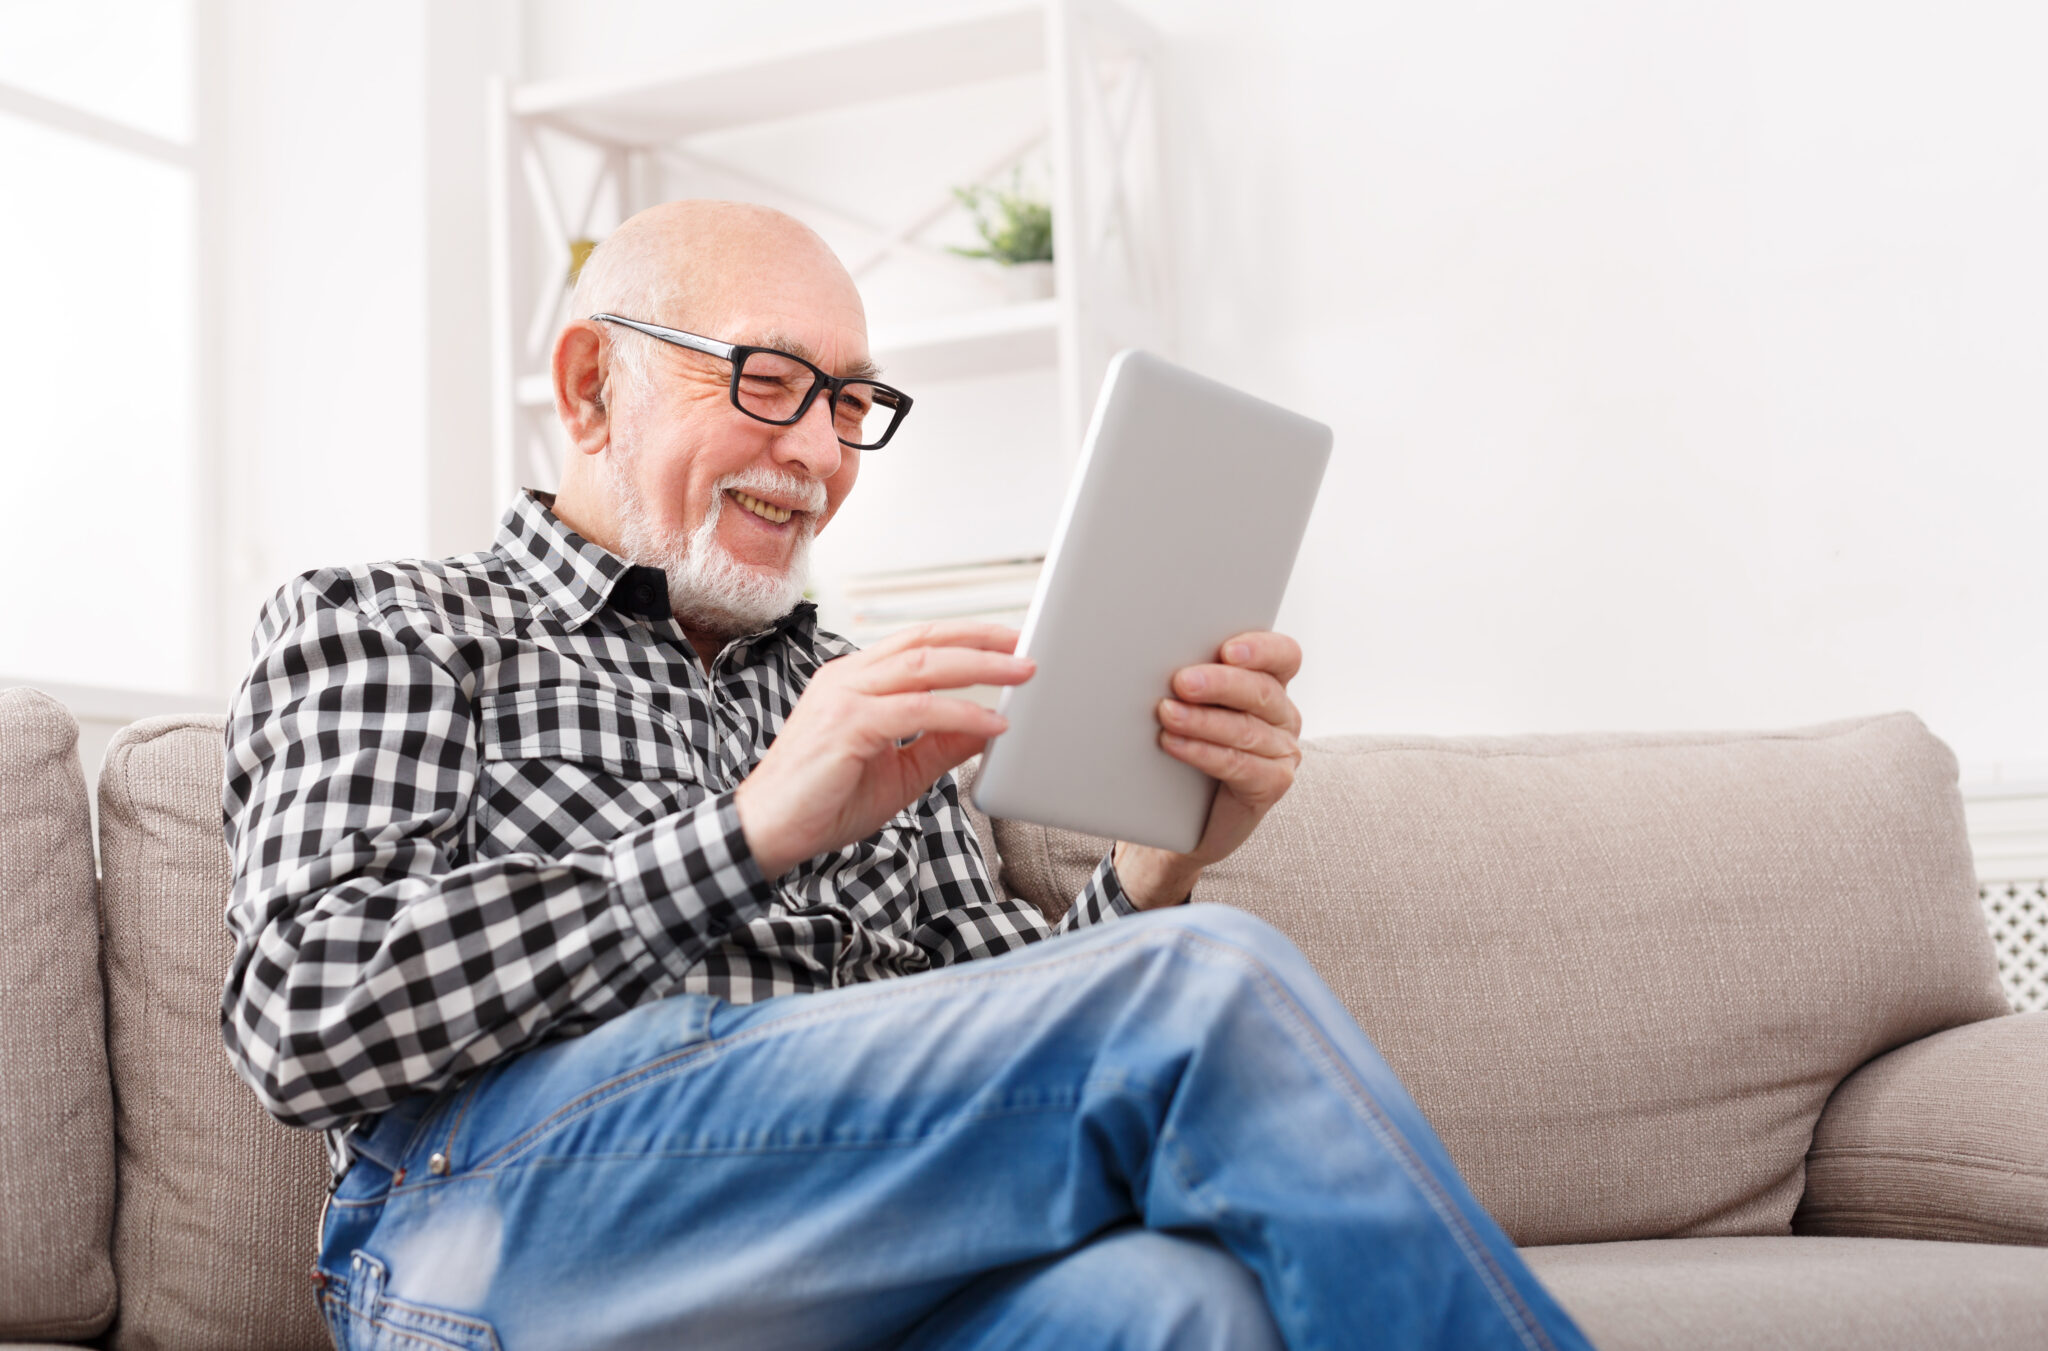 ORAL HEALTH AND THE RATE OF COGNITIVE DECLINE